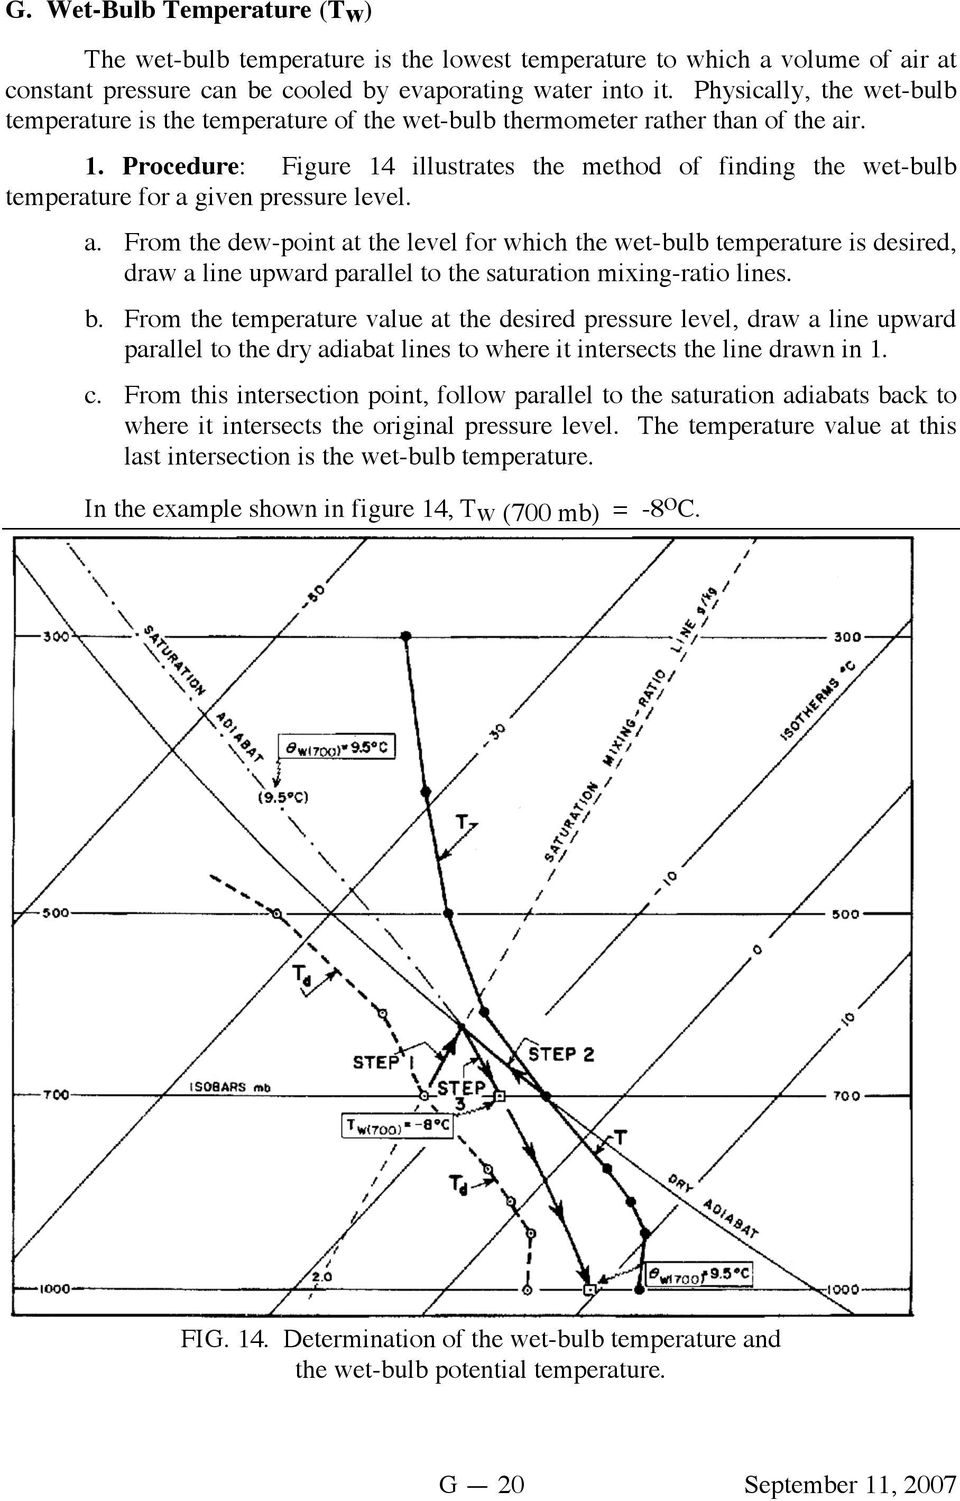 Procedure: Figure 14 illustrates the method of finding the wet-bulb temperature for a